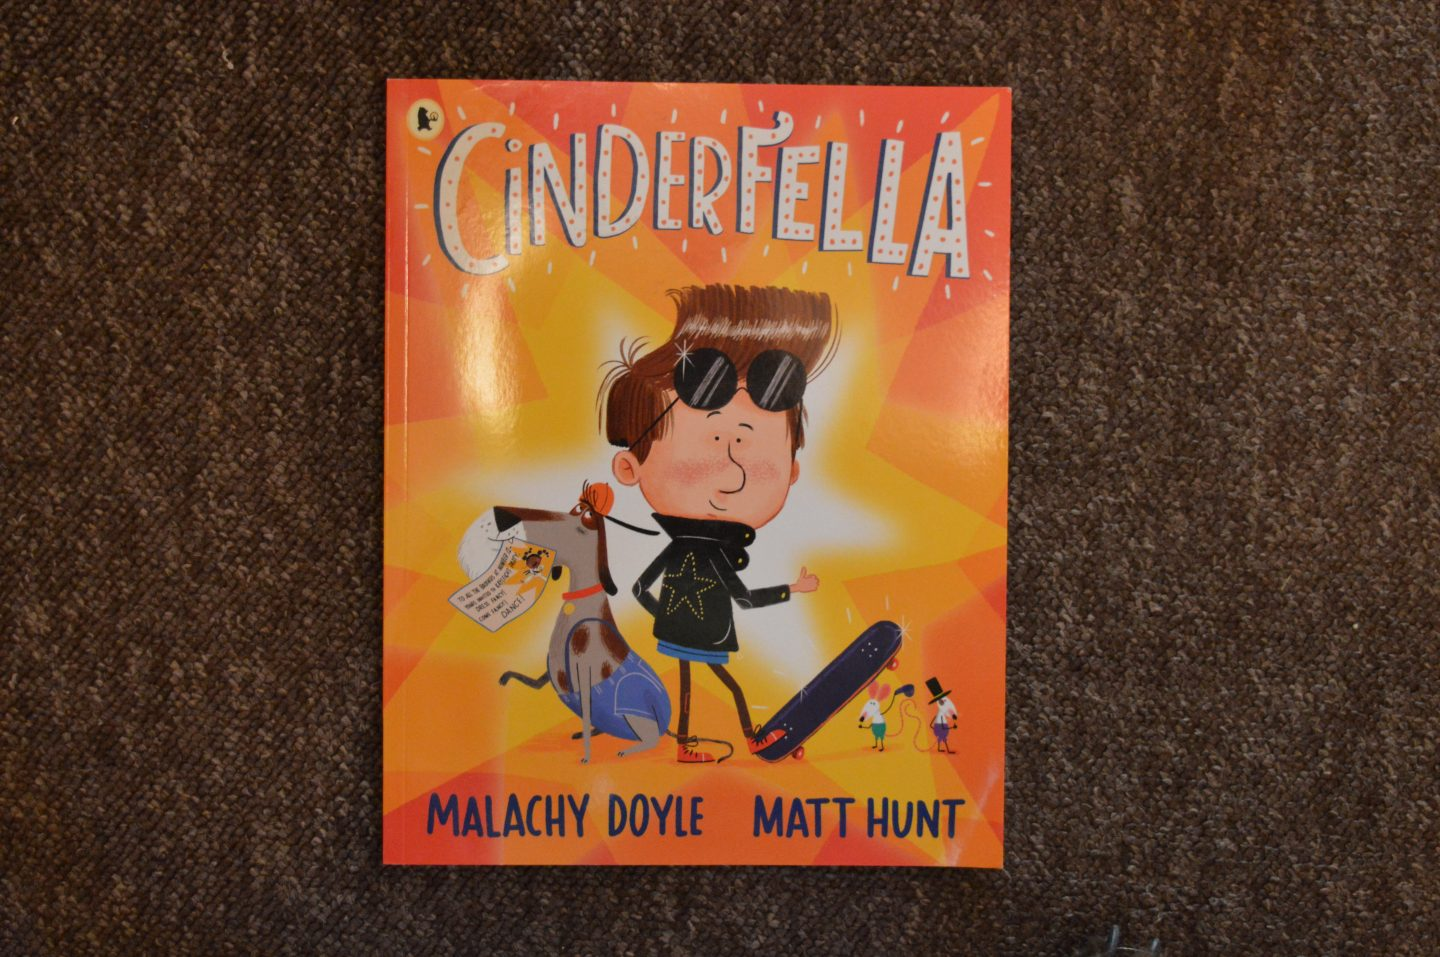 Book Review: Cinderfella by Malachy Doyle and Matt Hunt